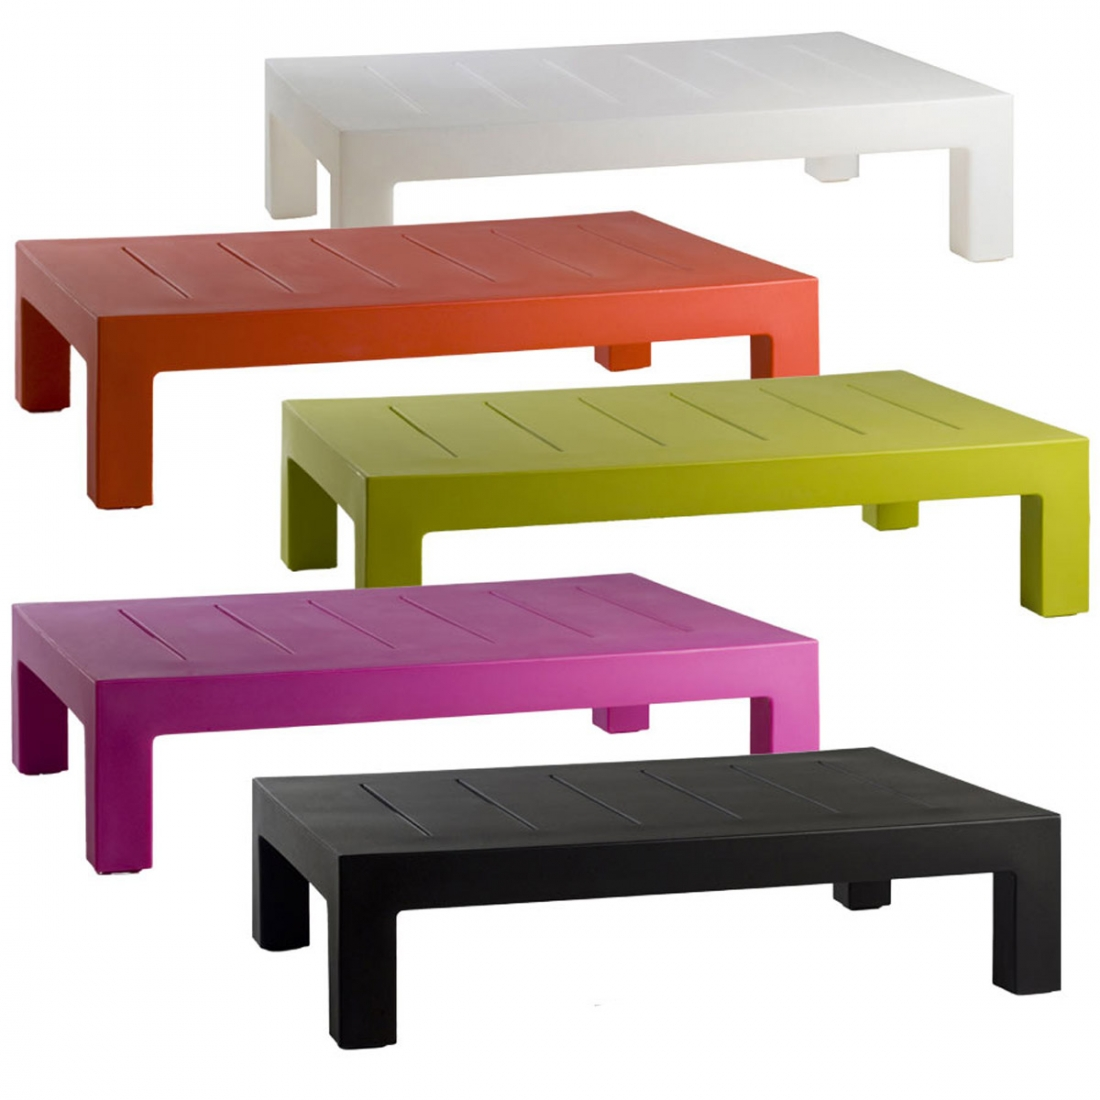 Table basse design d ext rieur jut par vondom - Salon de jardin plastique blanc design ...